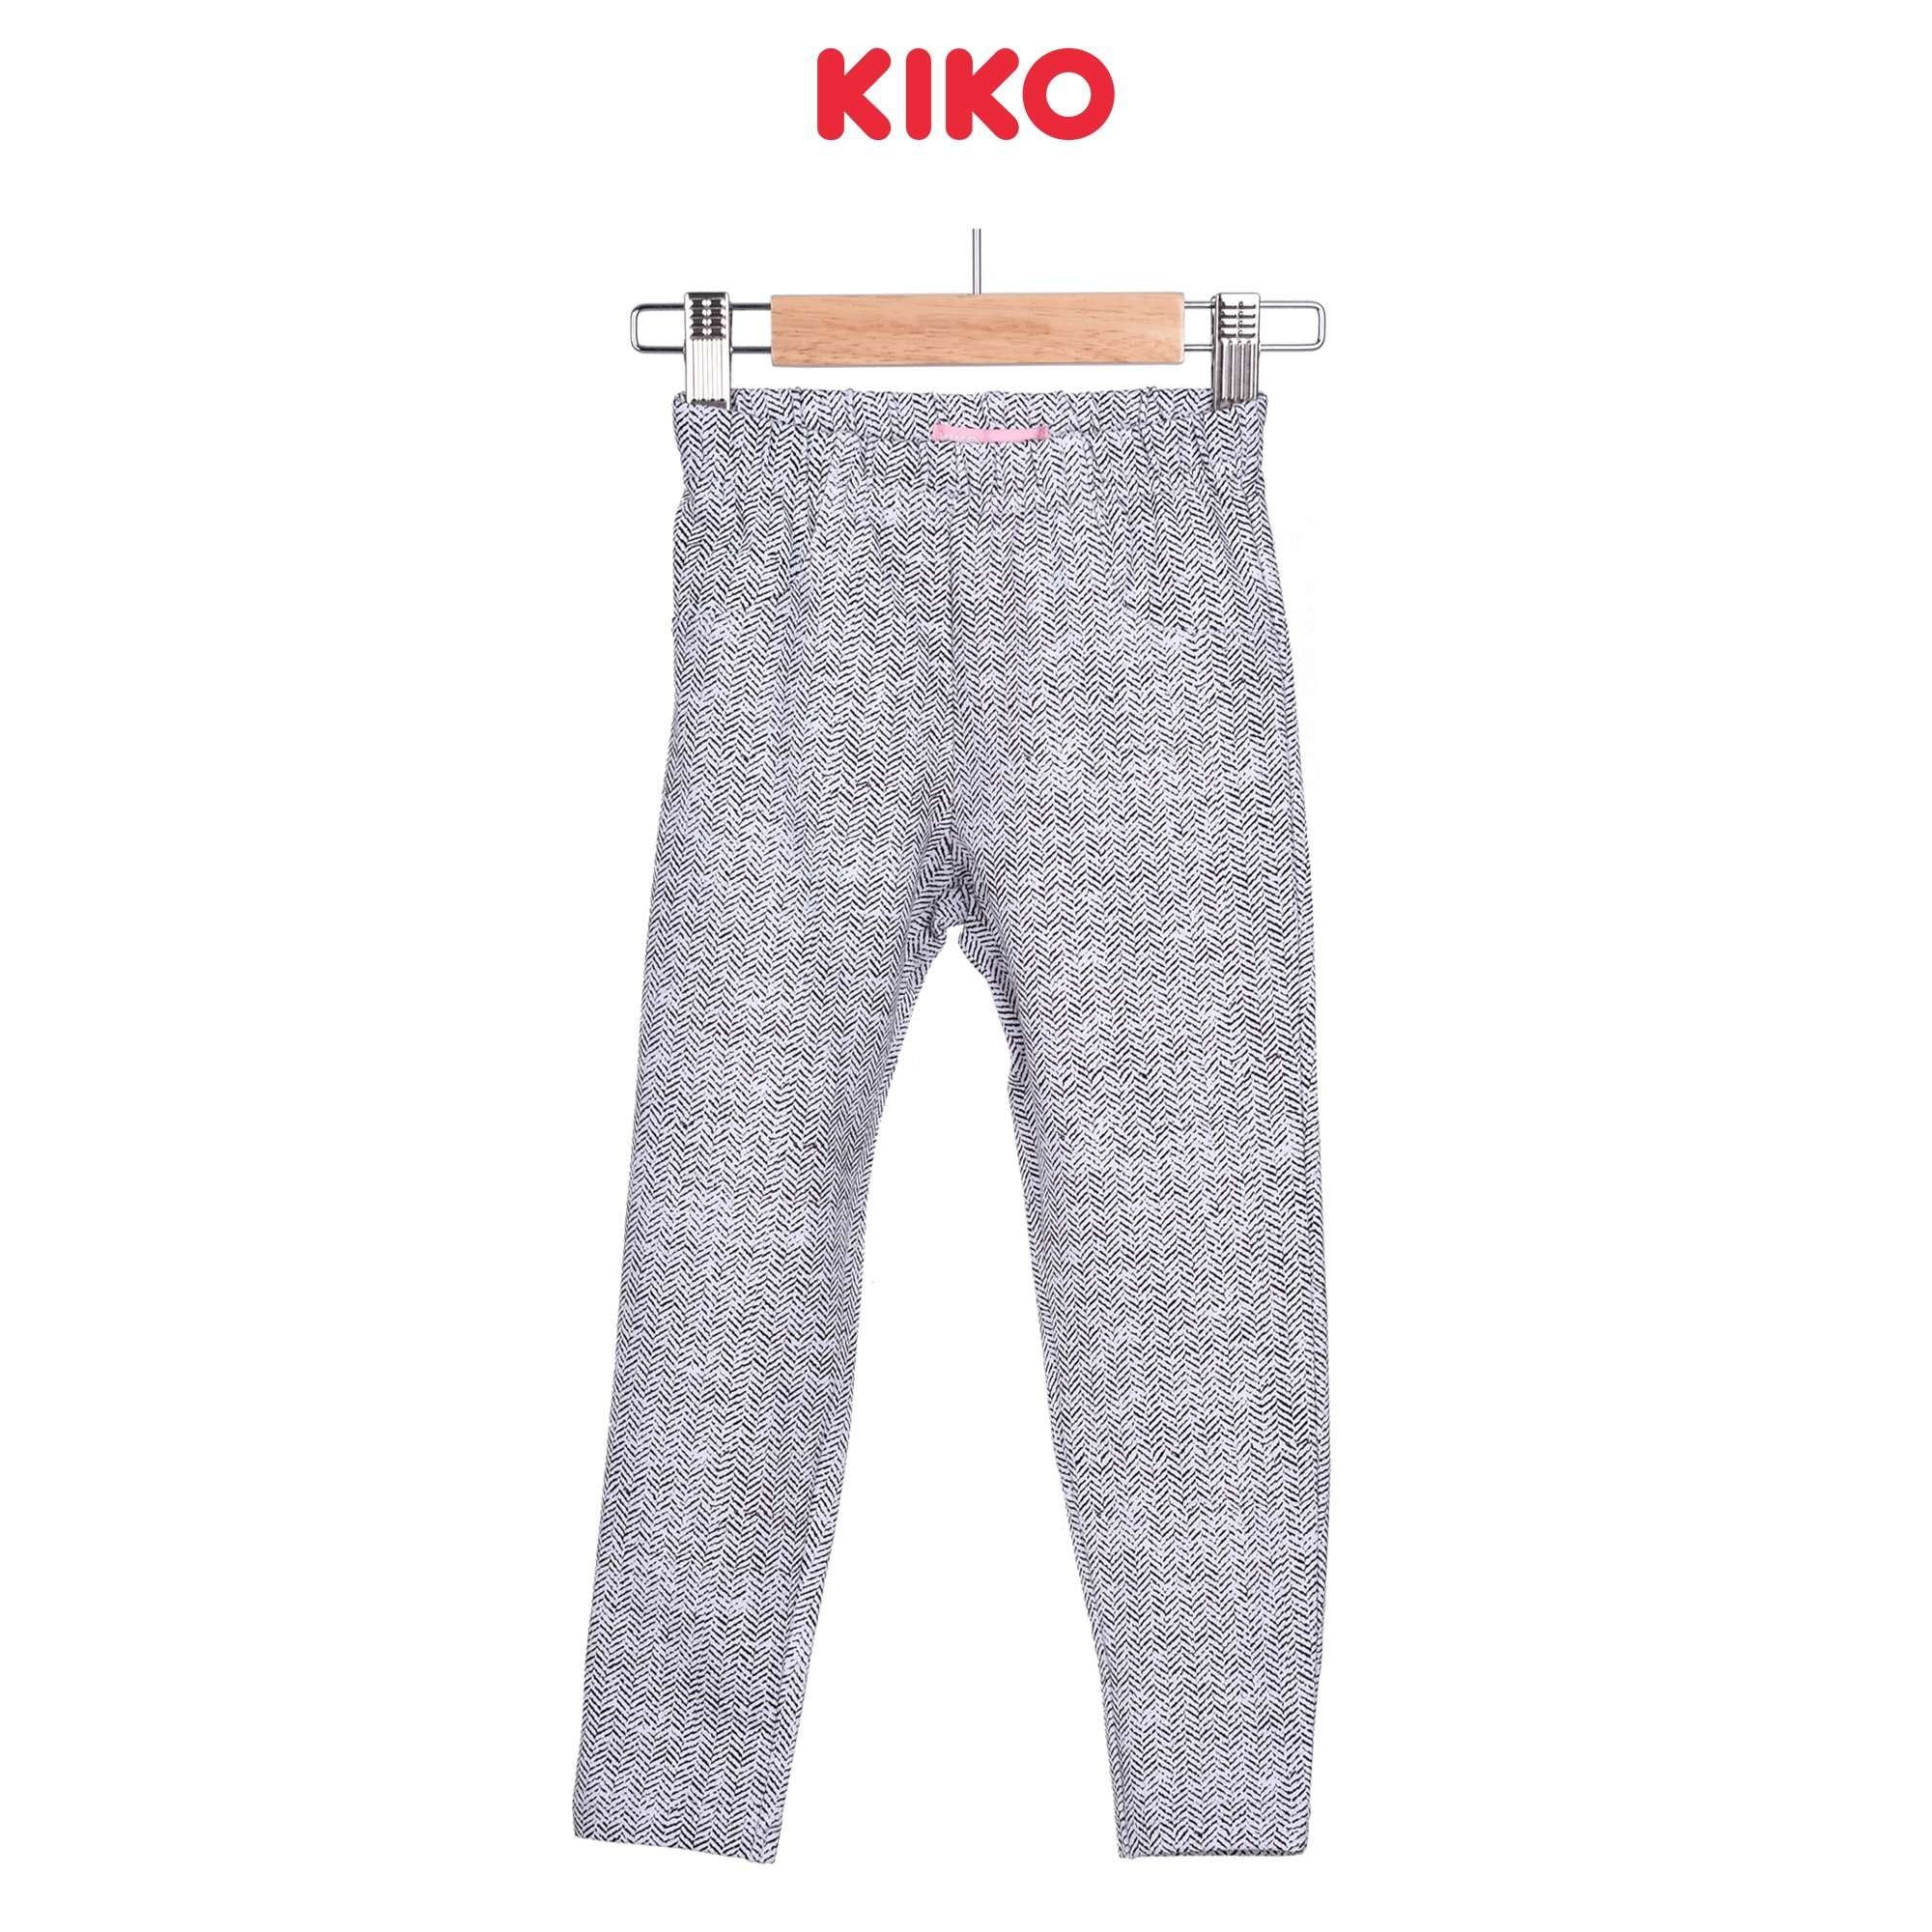 KIKO Girl Long Pants Leggings - White 126069-281 : Buy KIKO online at CMG.MY